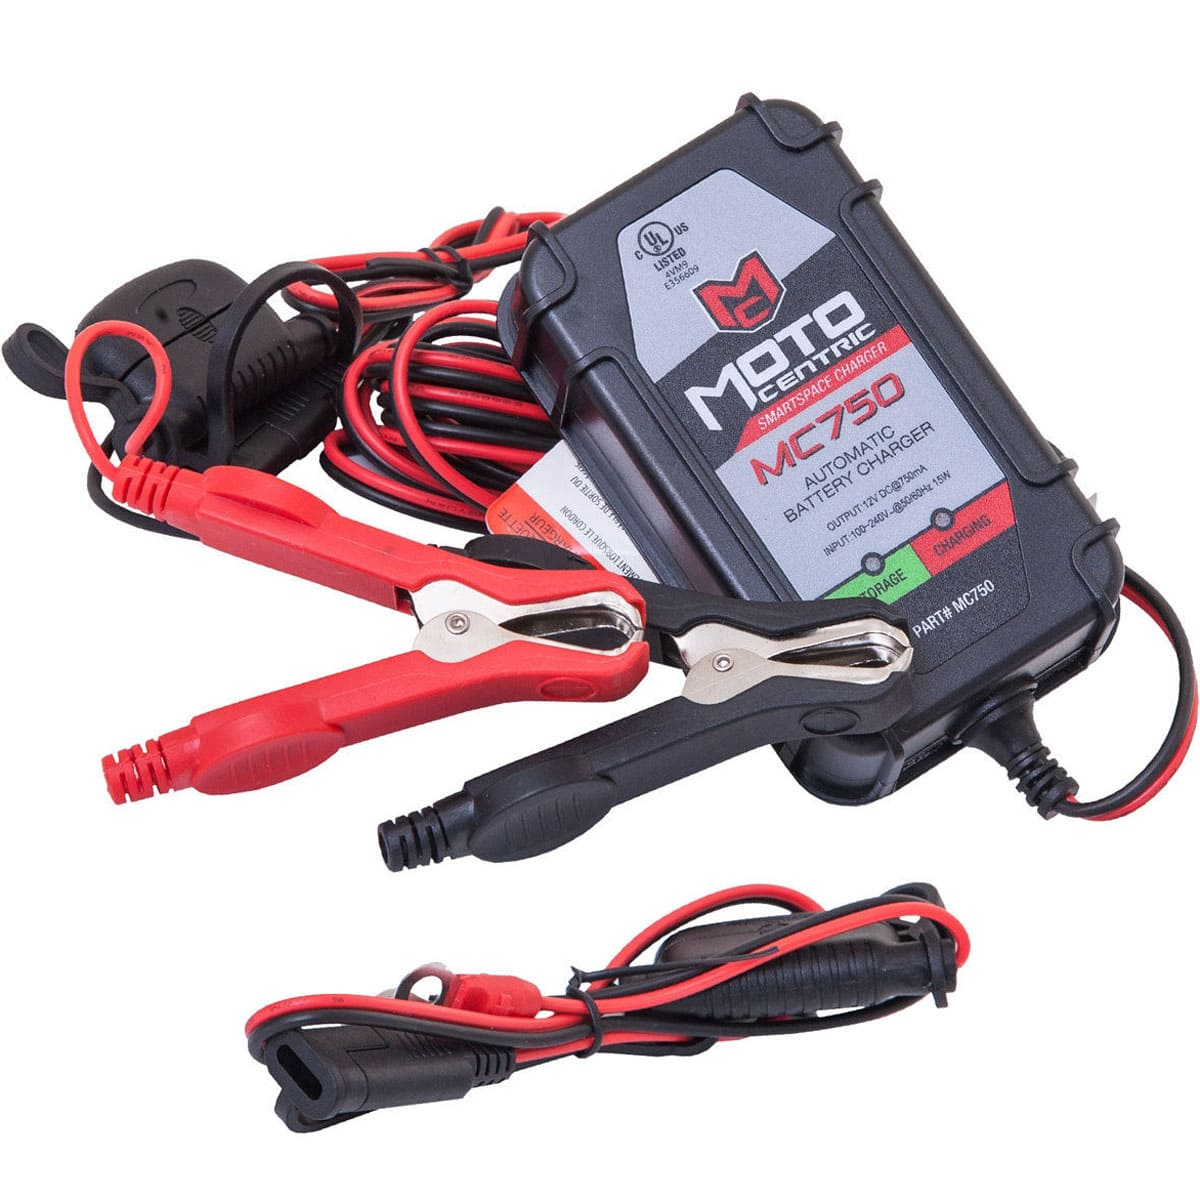 Motorcycle Superstore is having a closeout sale on this trickle/ battery chargers! Was $35 and now a mere $5!